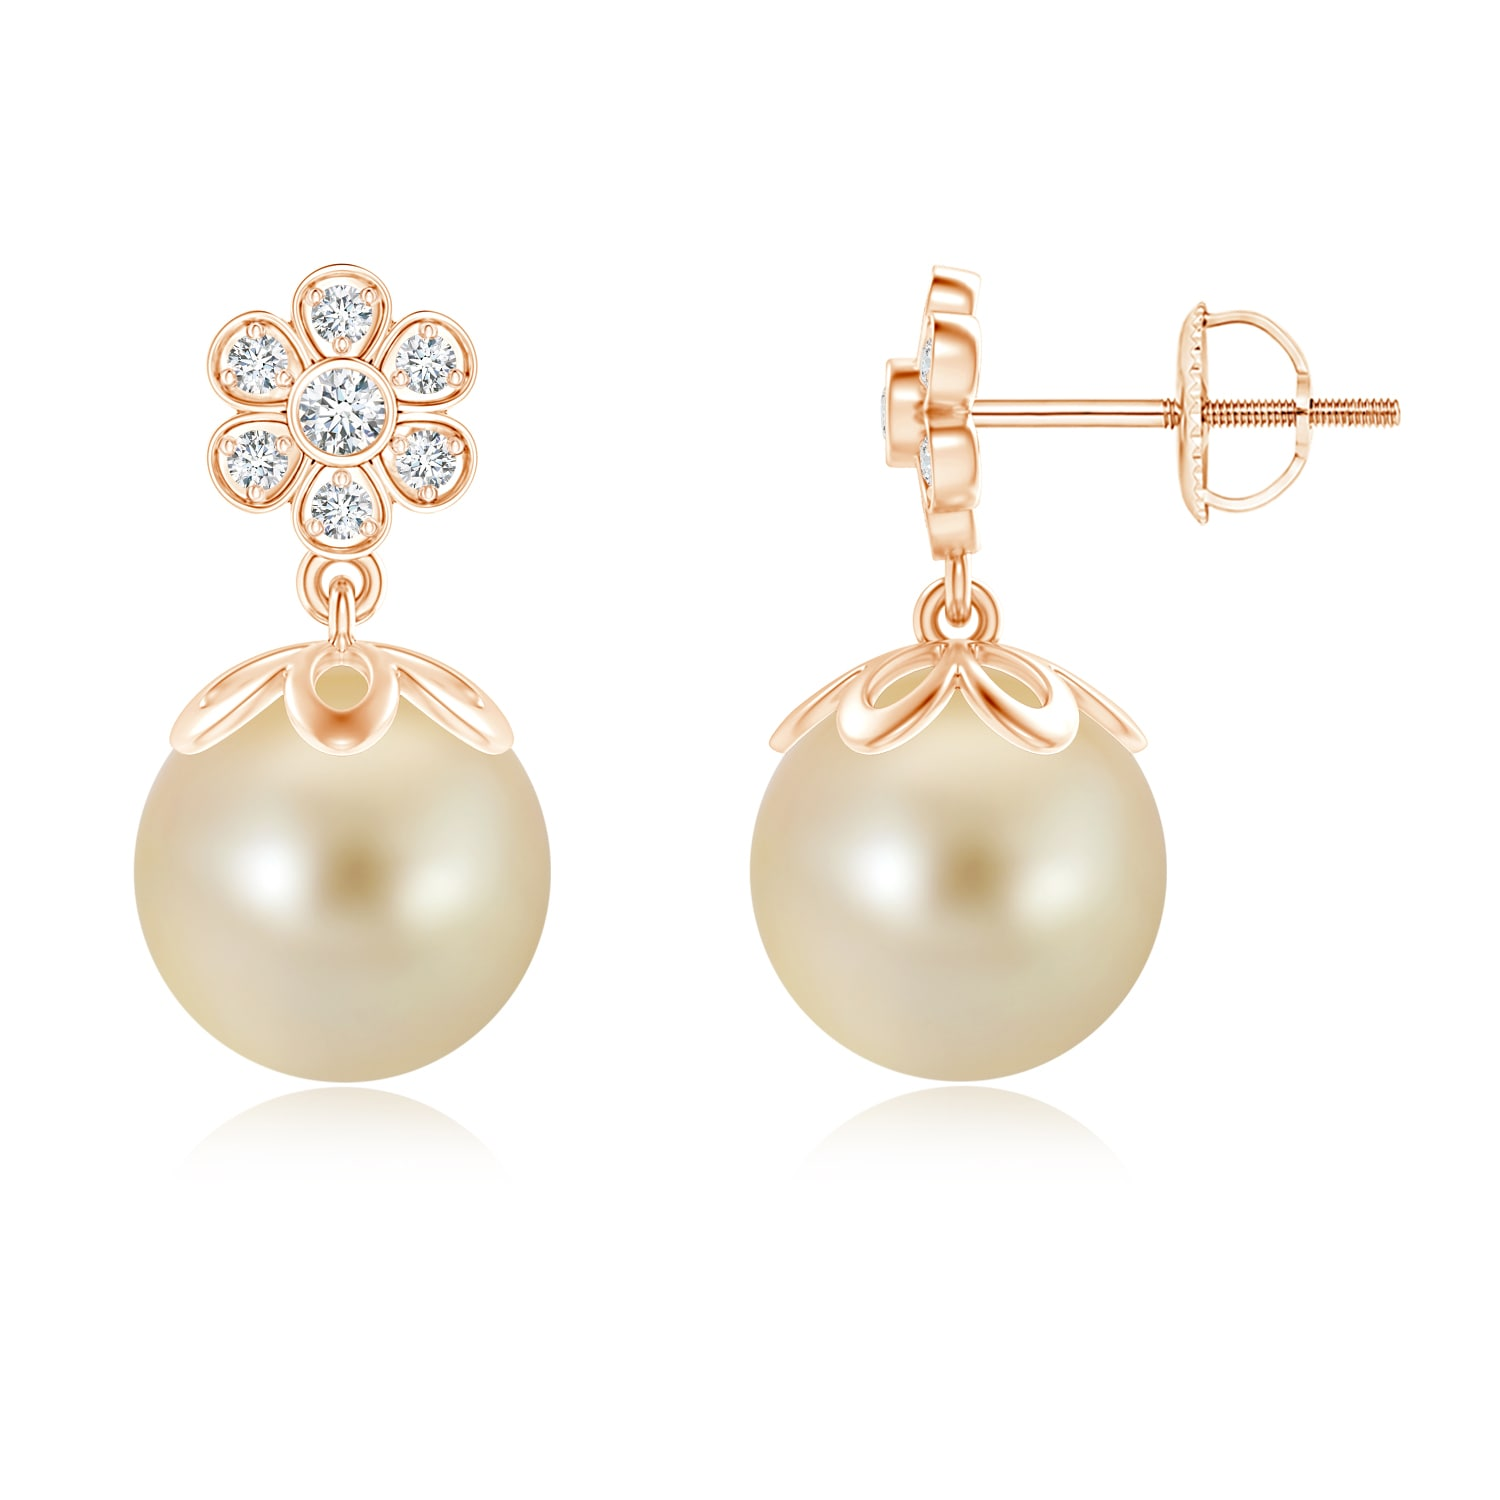 c68bccb2e89 Women s Day Sale - Golden South Sea Cultured Pearl Floral Drop Earrings in  14K Rose Gold (9mm Golden South Sea Cultured Pearl)- SE1239GSPRD-RG-AAA-9